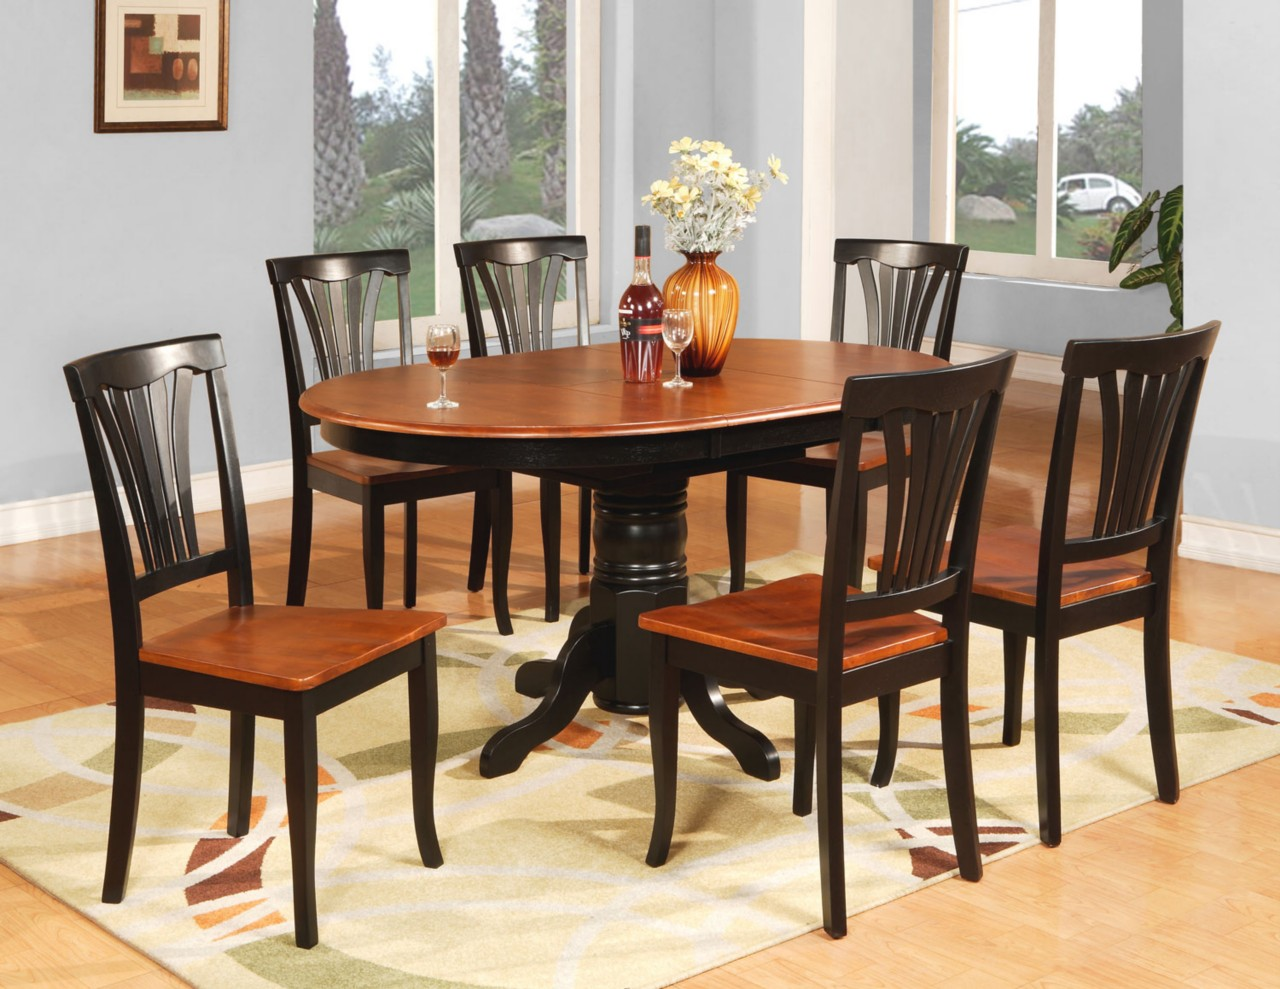 7 pc oval dinette kitchen dining room table 6 chairs ebay On dining room table with 6 chairs